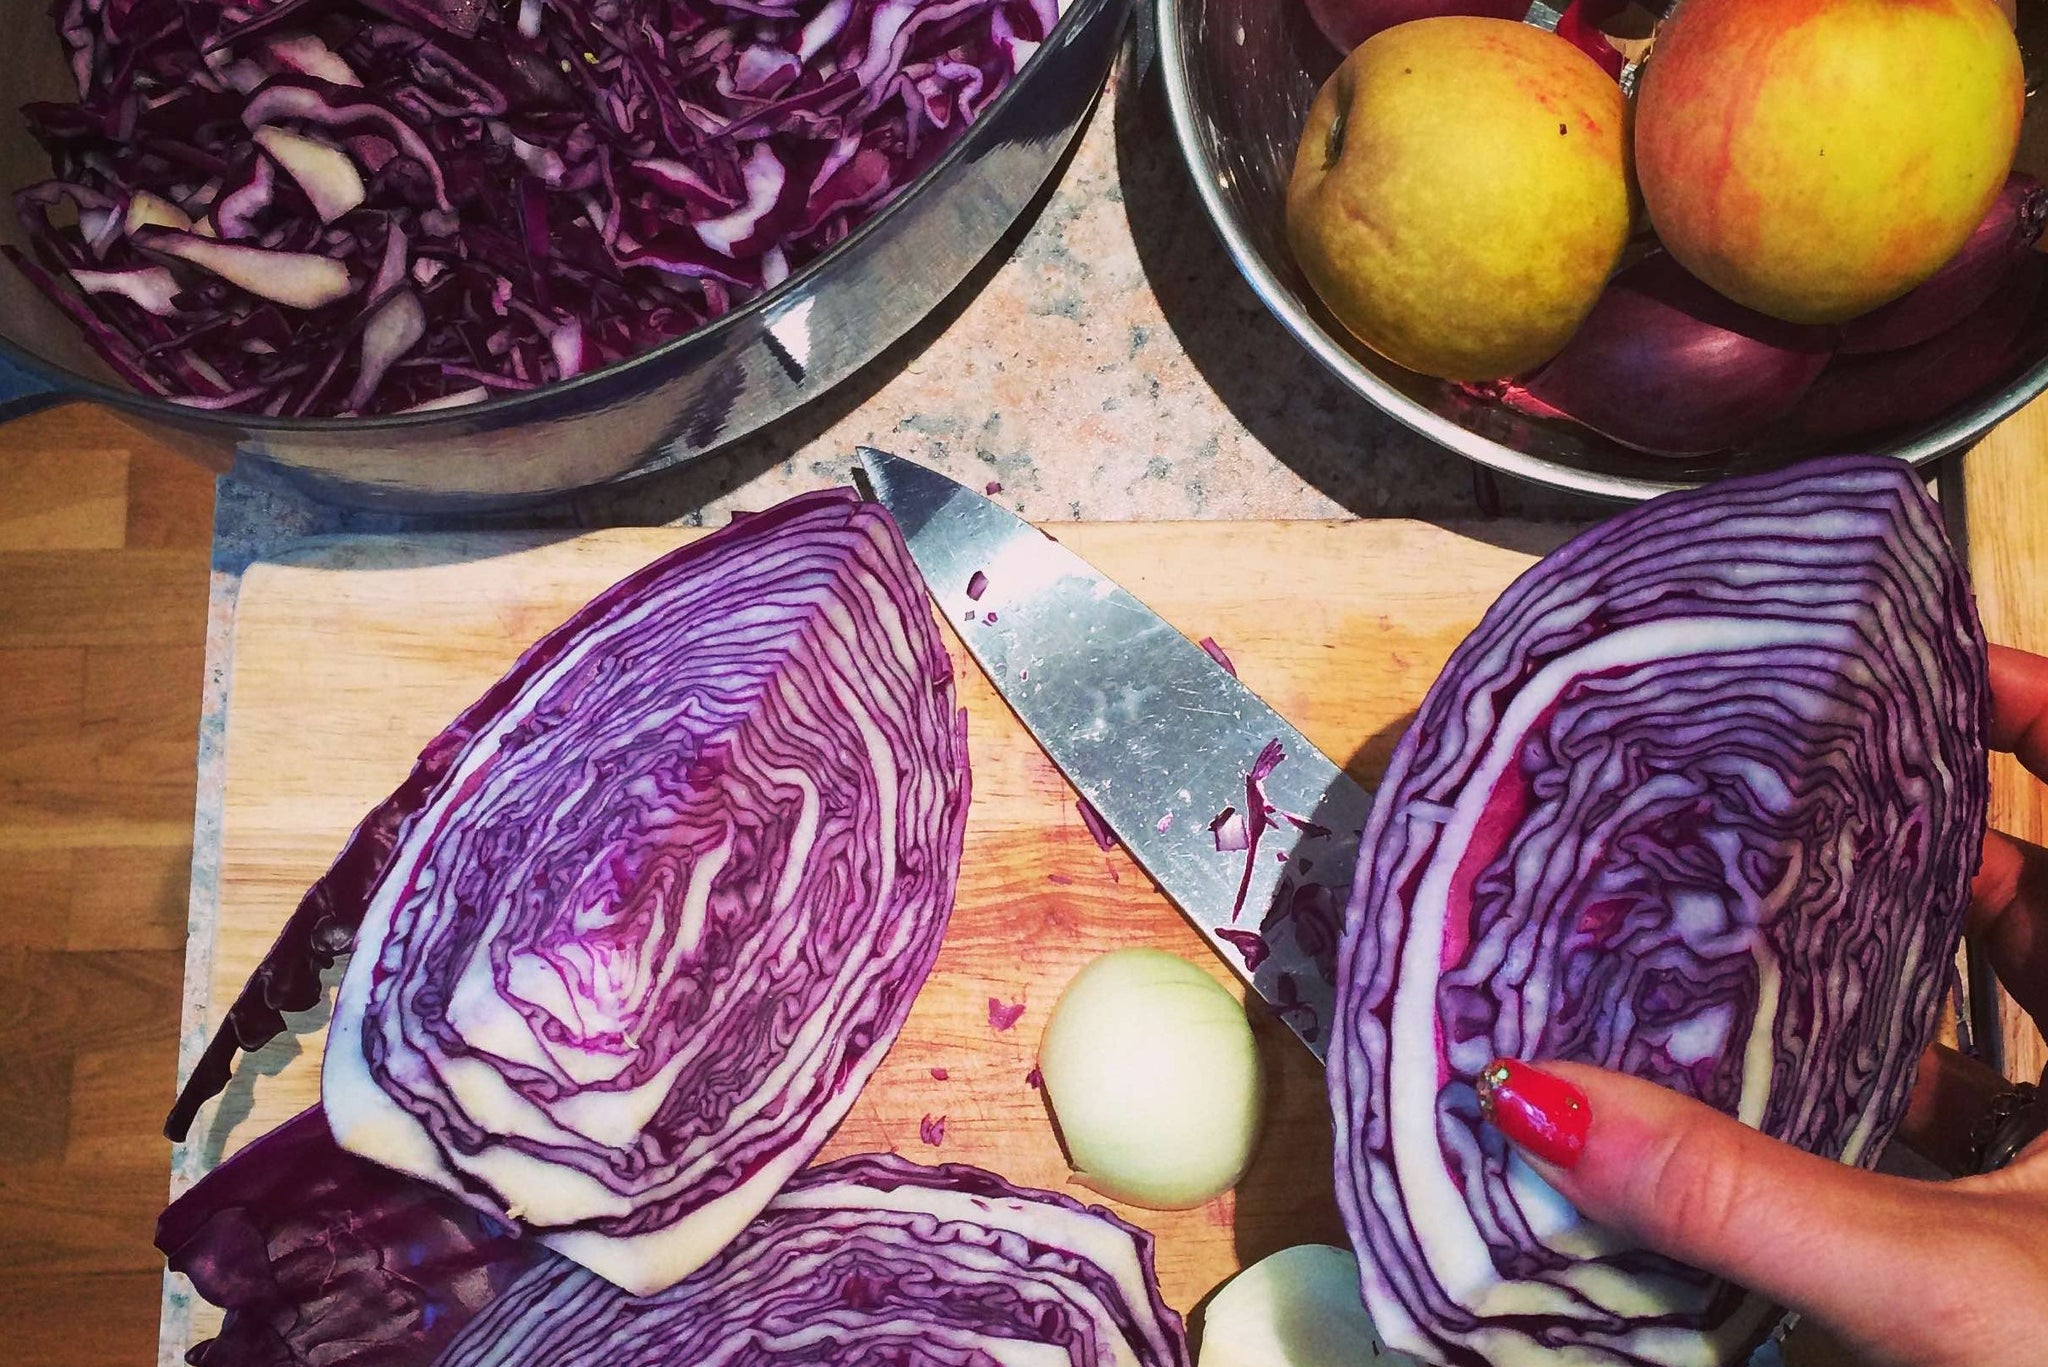 Spiced braised Red Cabbage